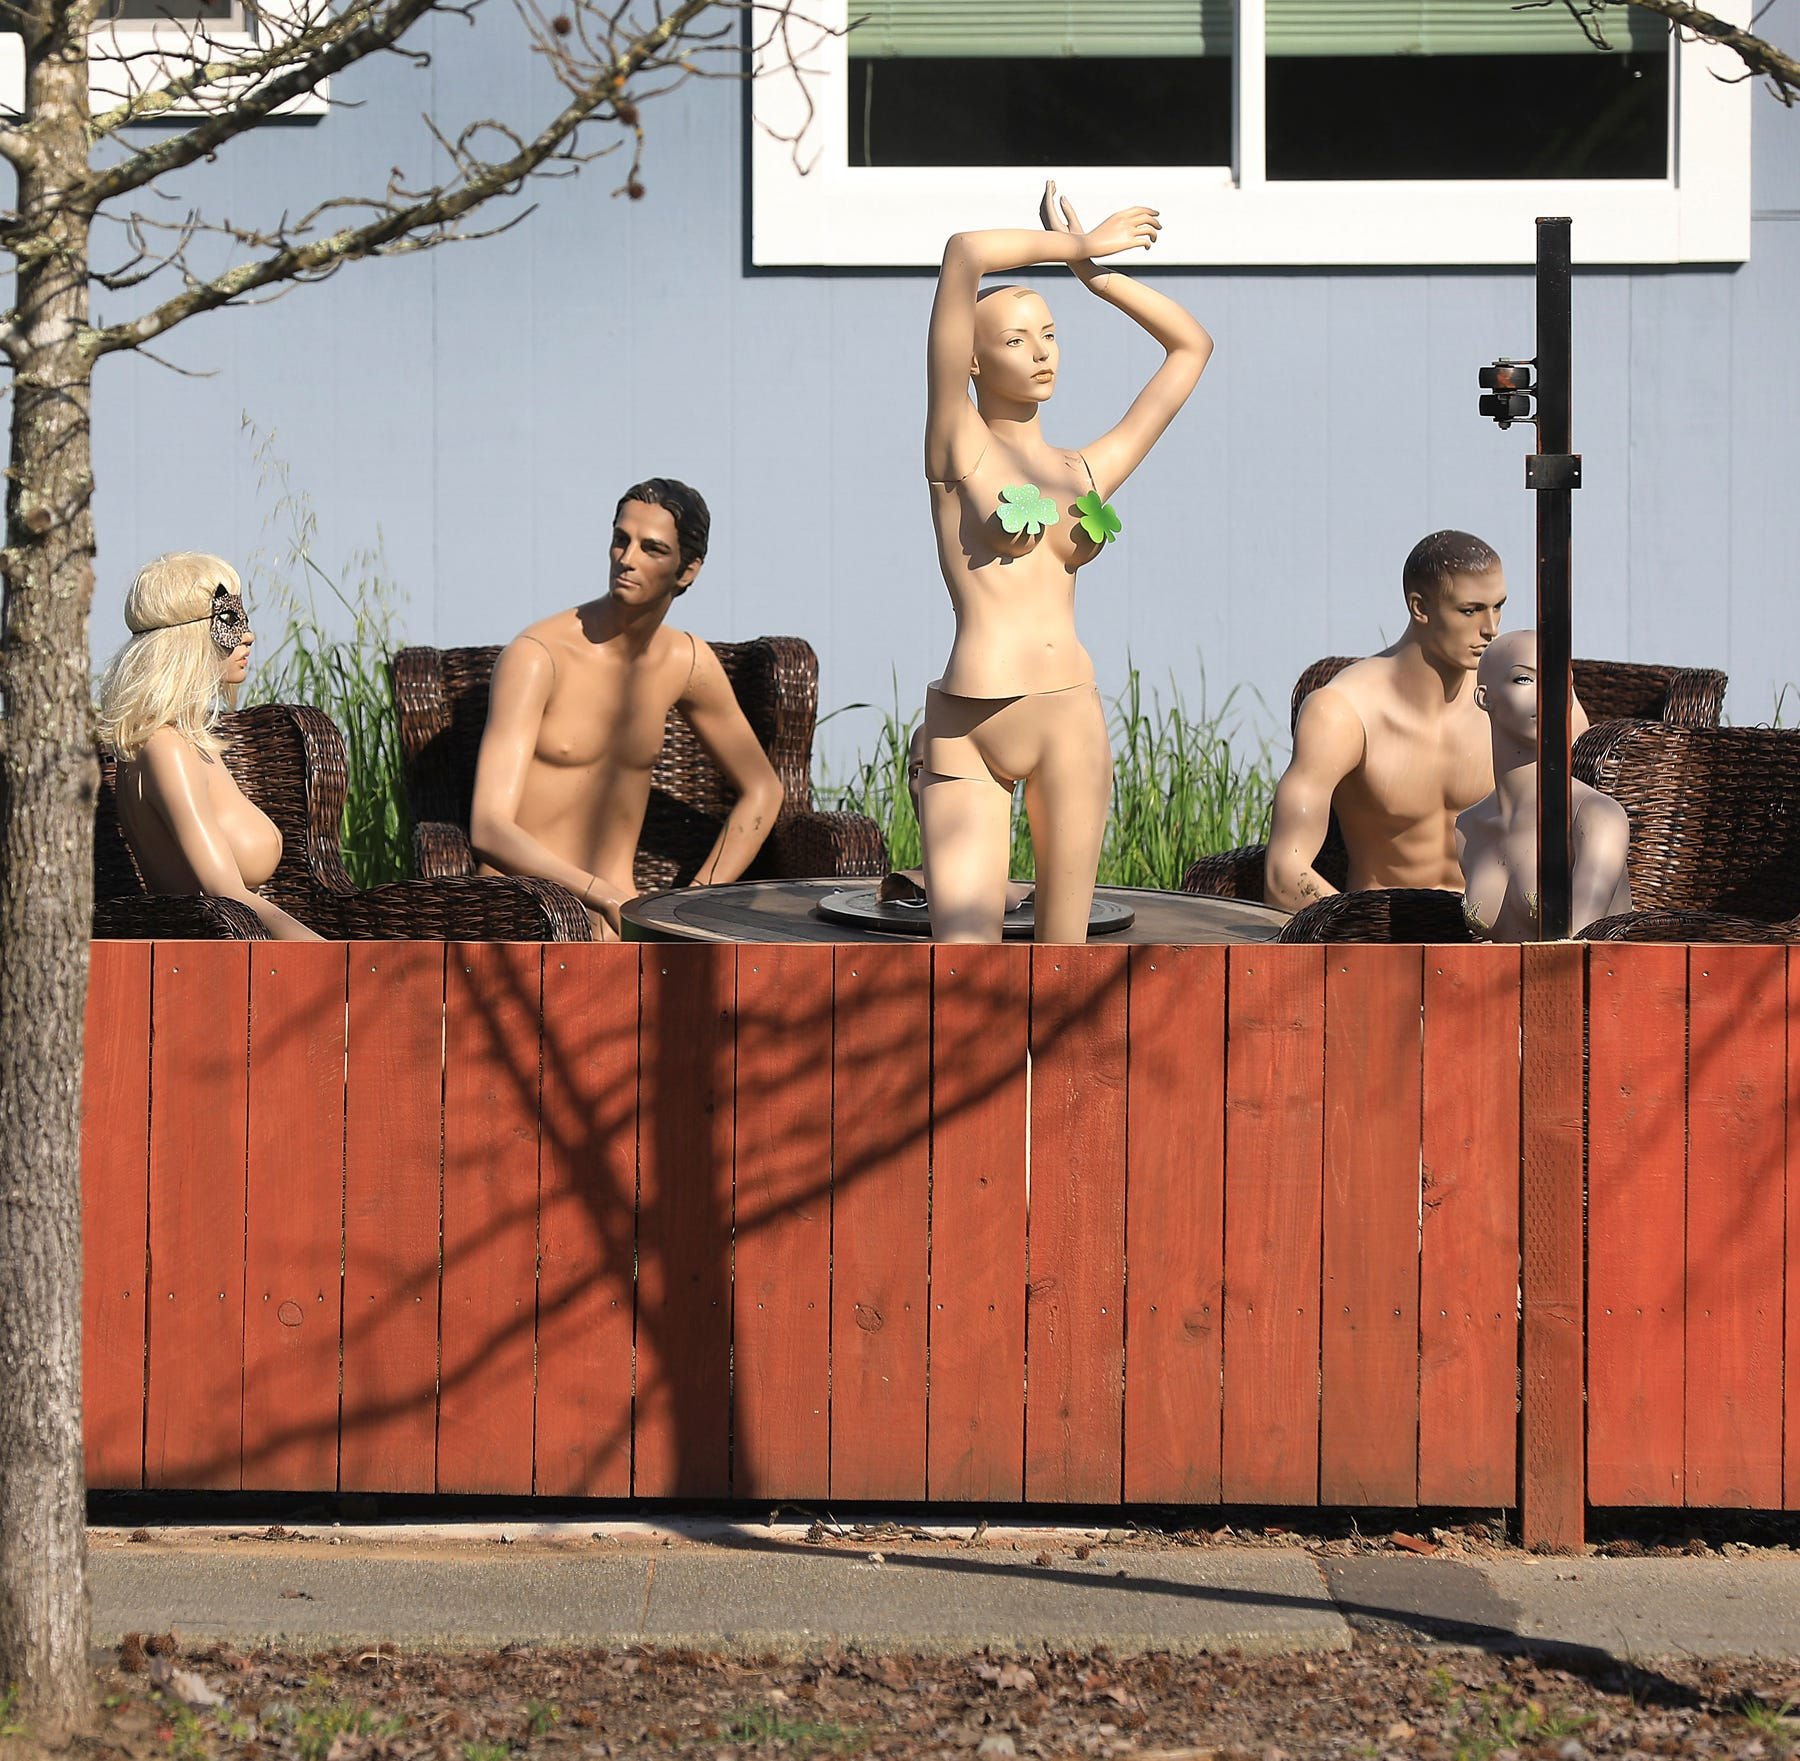 Nosy California neighbor gets an eyeful from naked mannequins